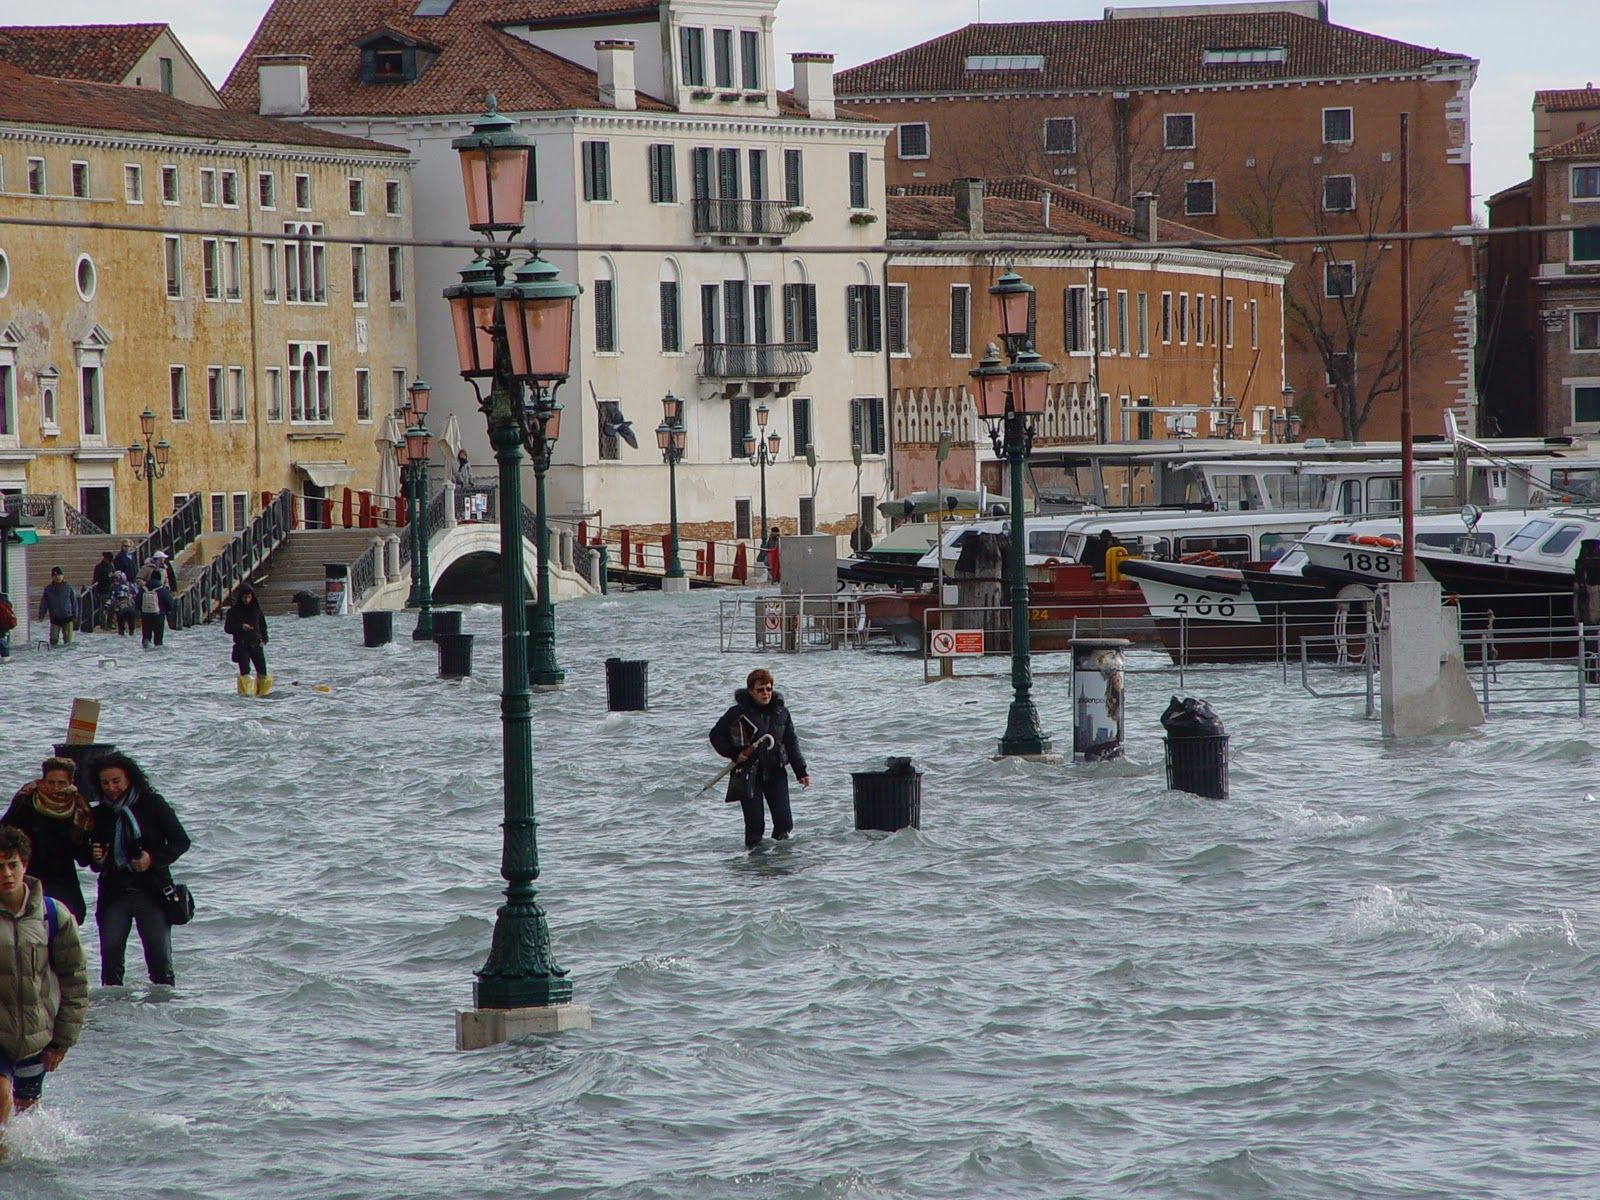 venezia http://cartesensibili.wordpress.com/2014/09/06/acqua-alta-francesca-diano